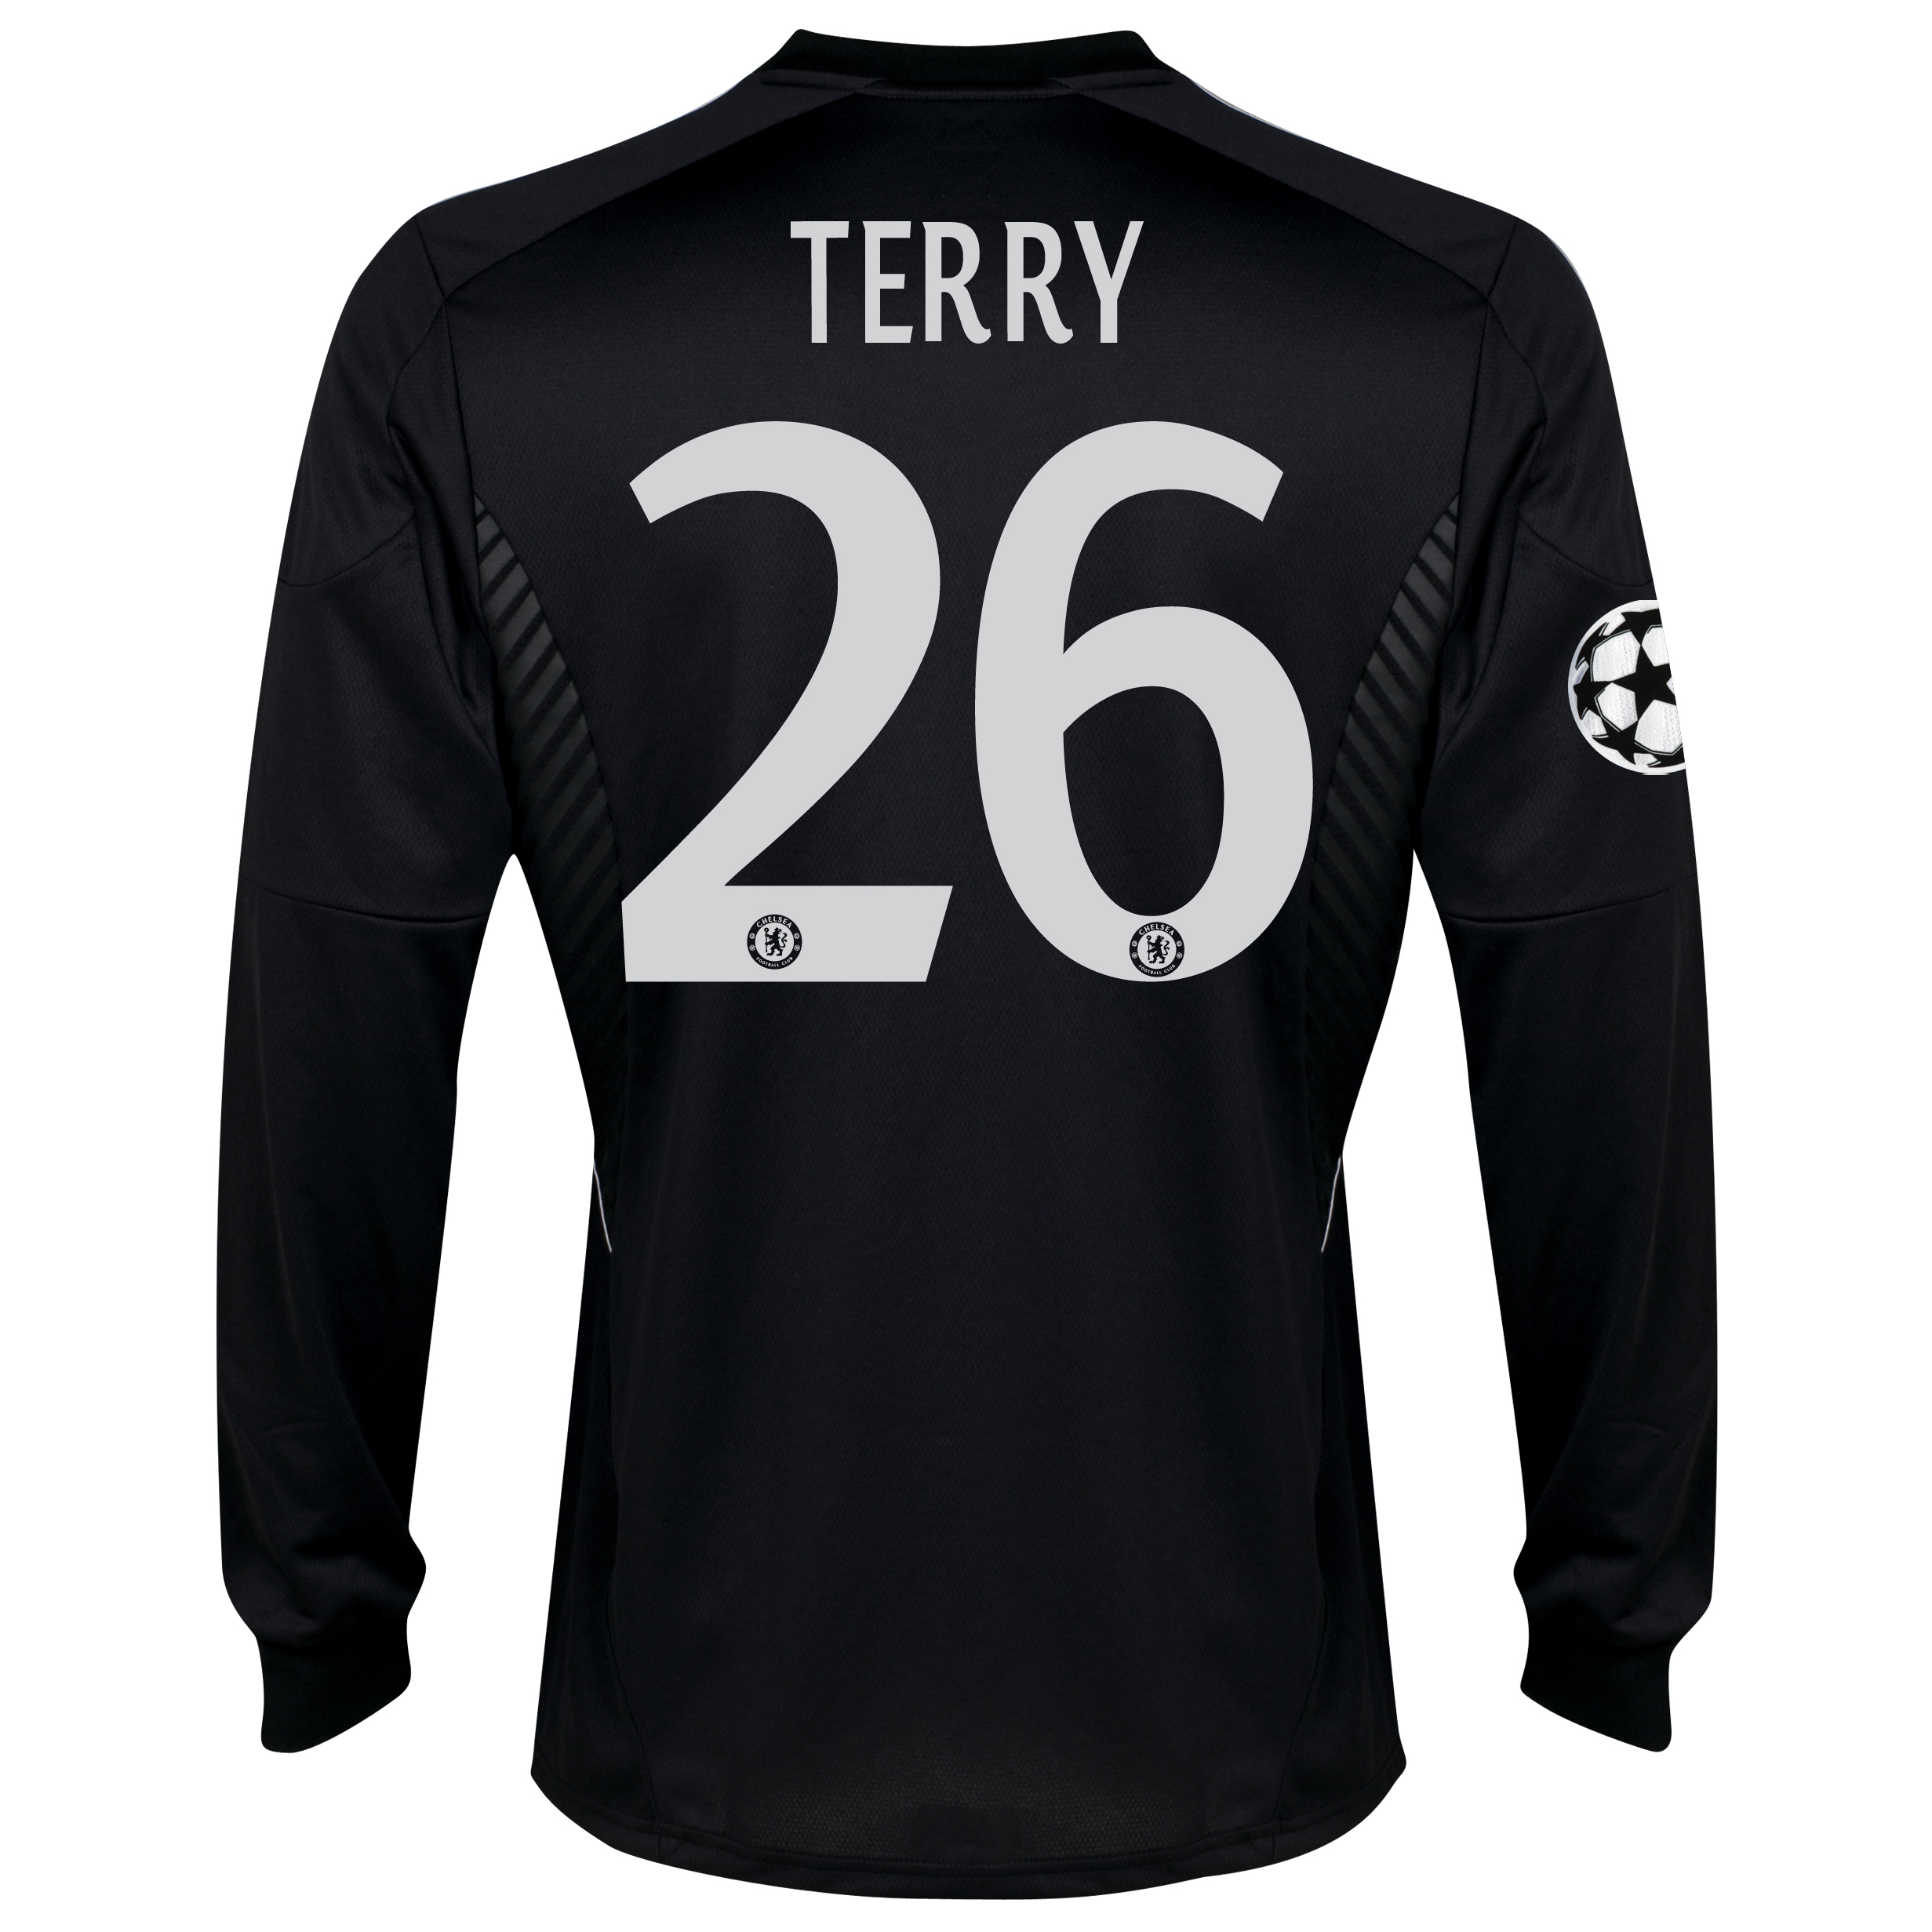 Chelsea UEFA Champions League Third Shirt 2013/14 -Long Sleeve - kids with Terry 26 printing